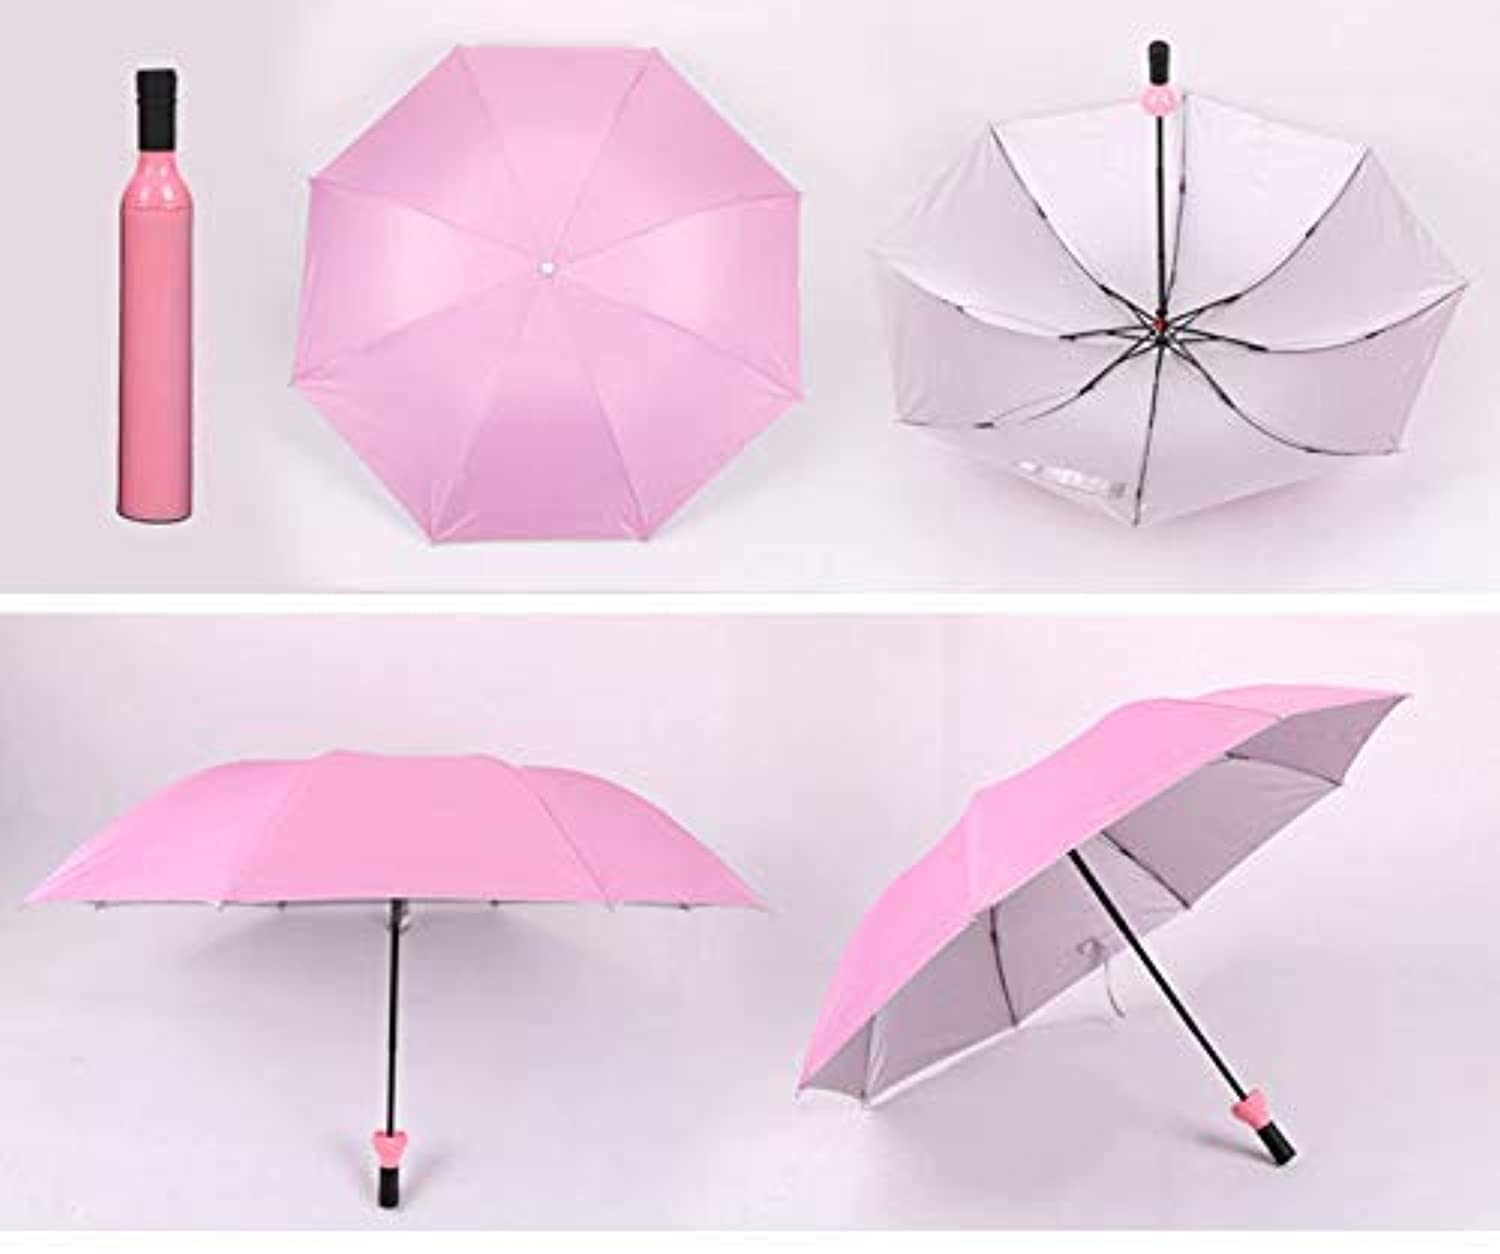 Double Layer Folding Portable Wine Bottle Umbrella With Bottle Cover For UV Protection & Rain